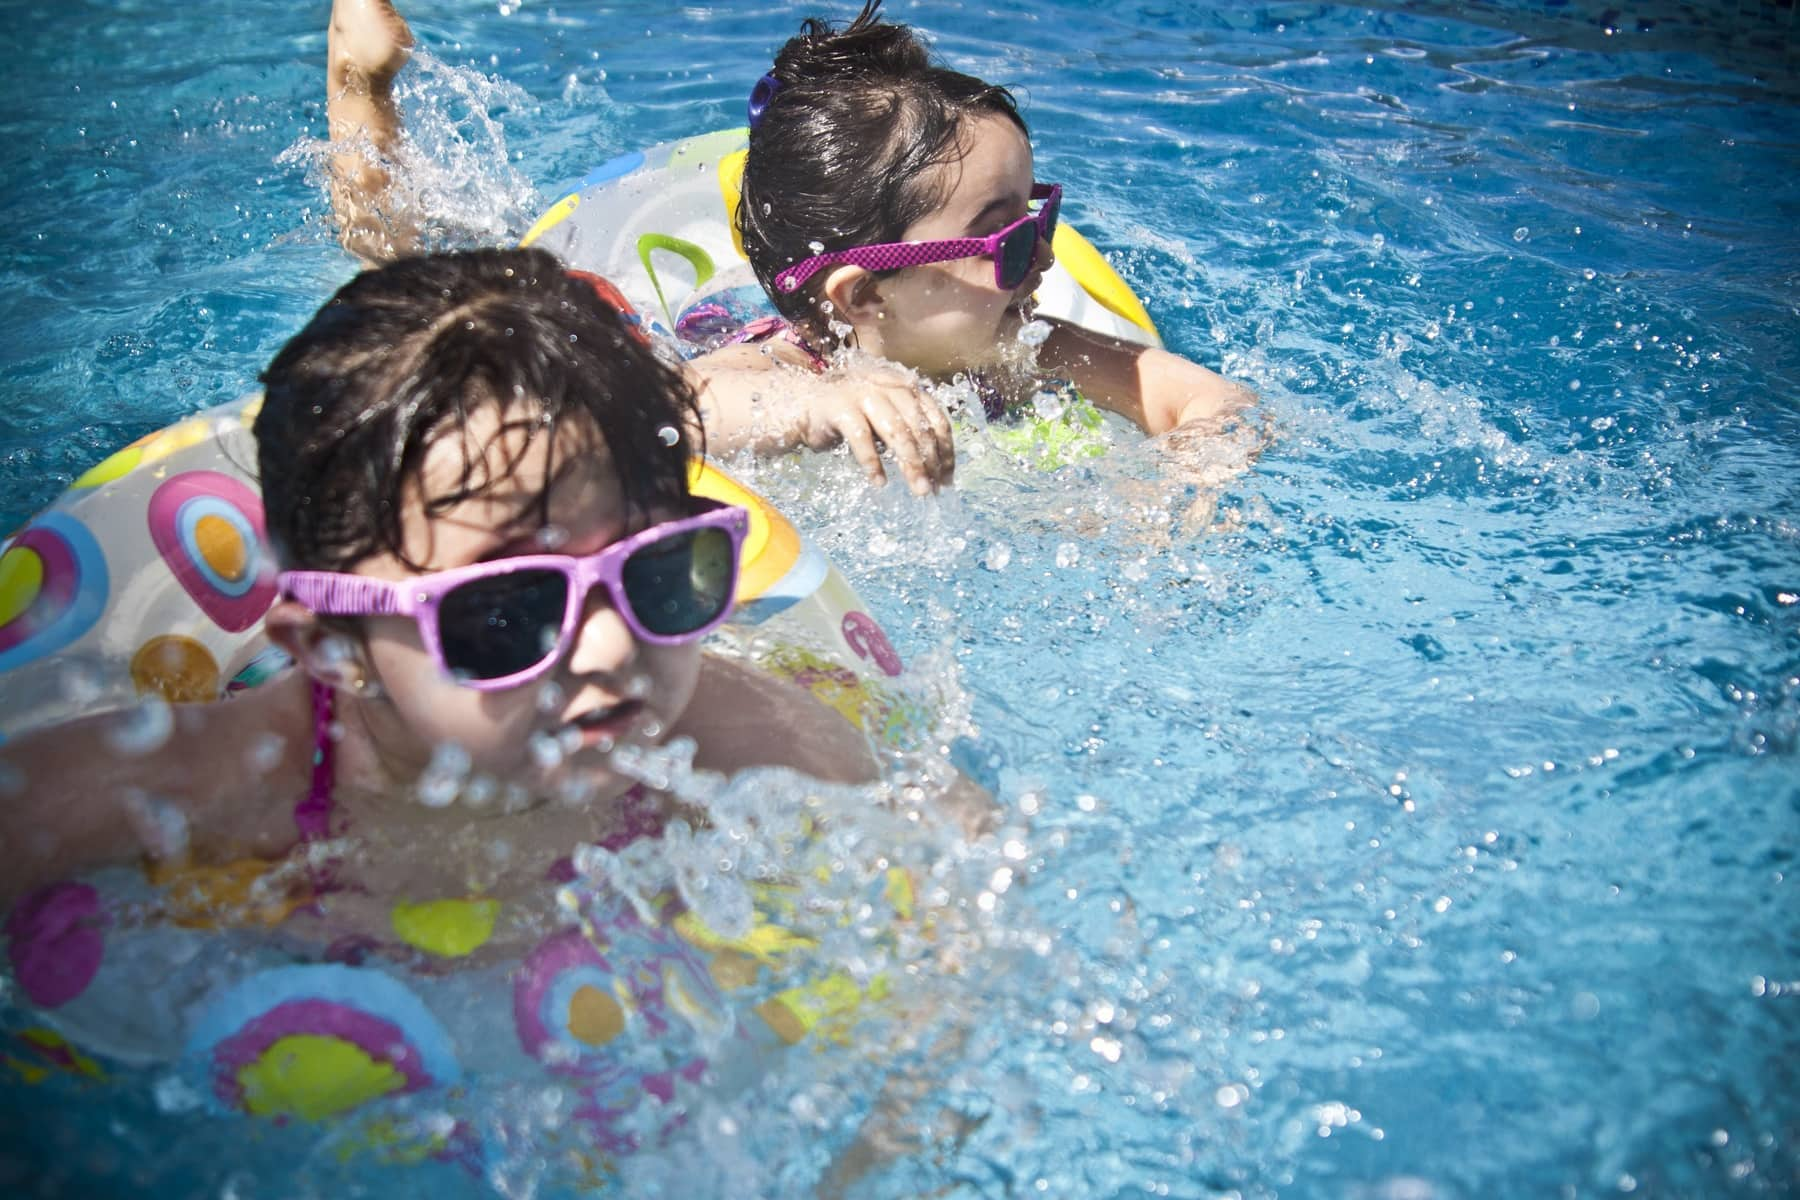 Learn-to-Swim program launched at Mossman Pool